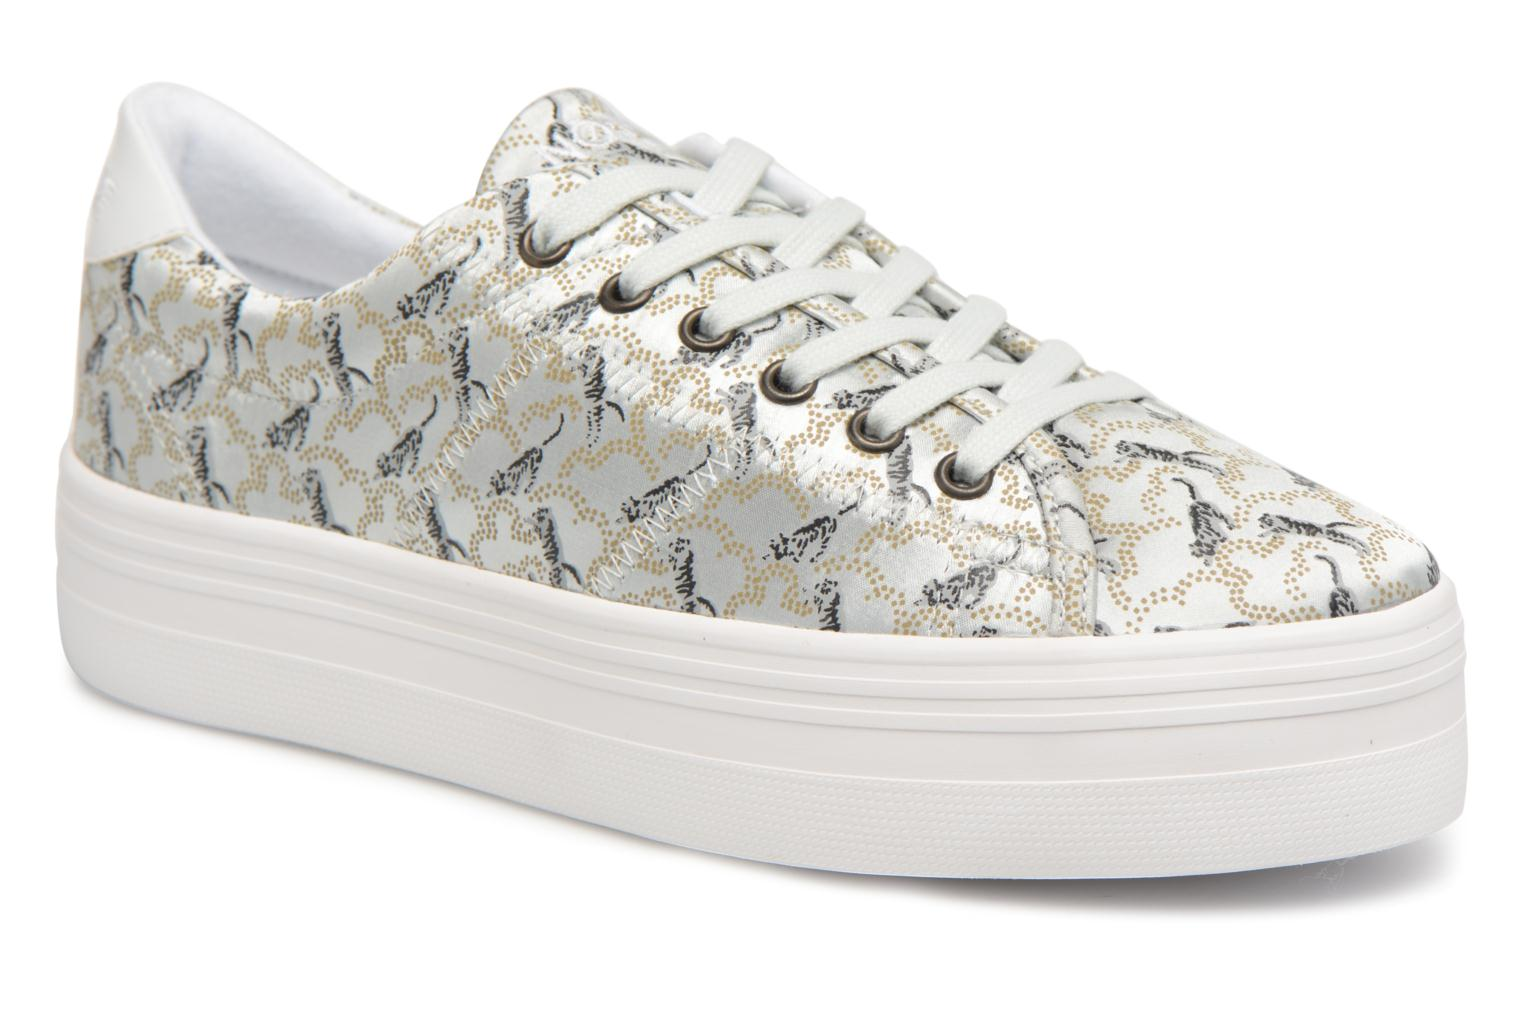 Name No Tiger Plato Sneaker Print